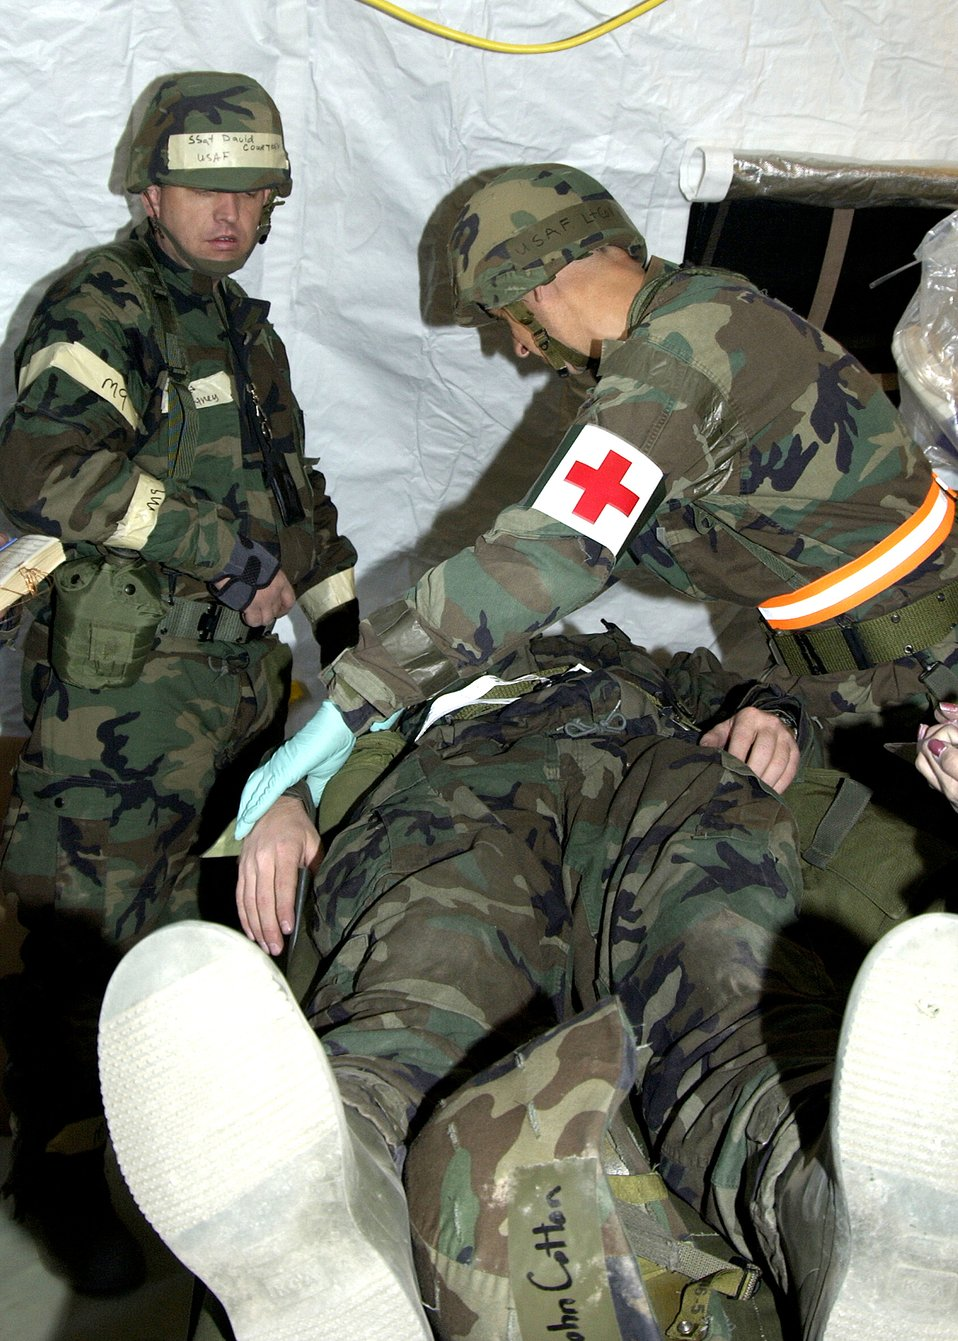 Treating the wounded